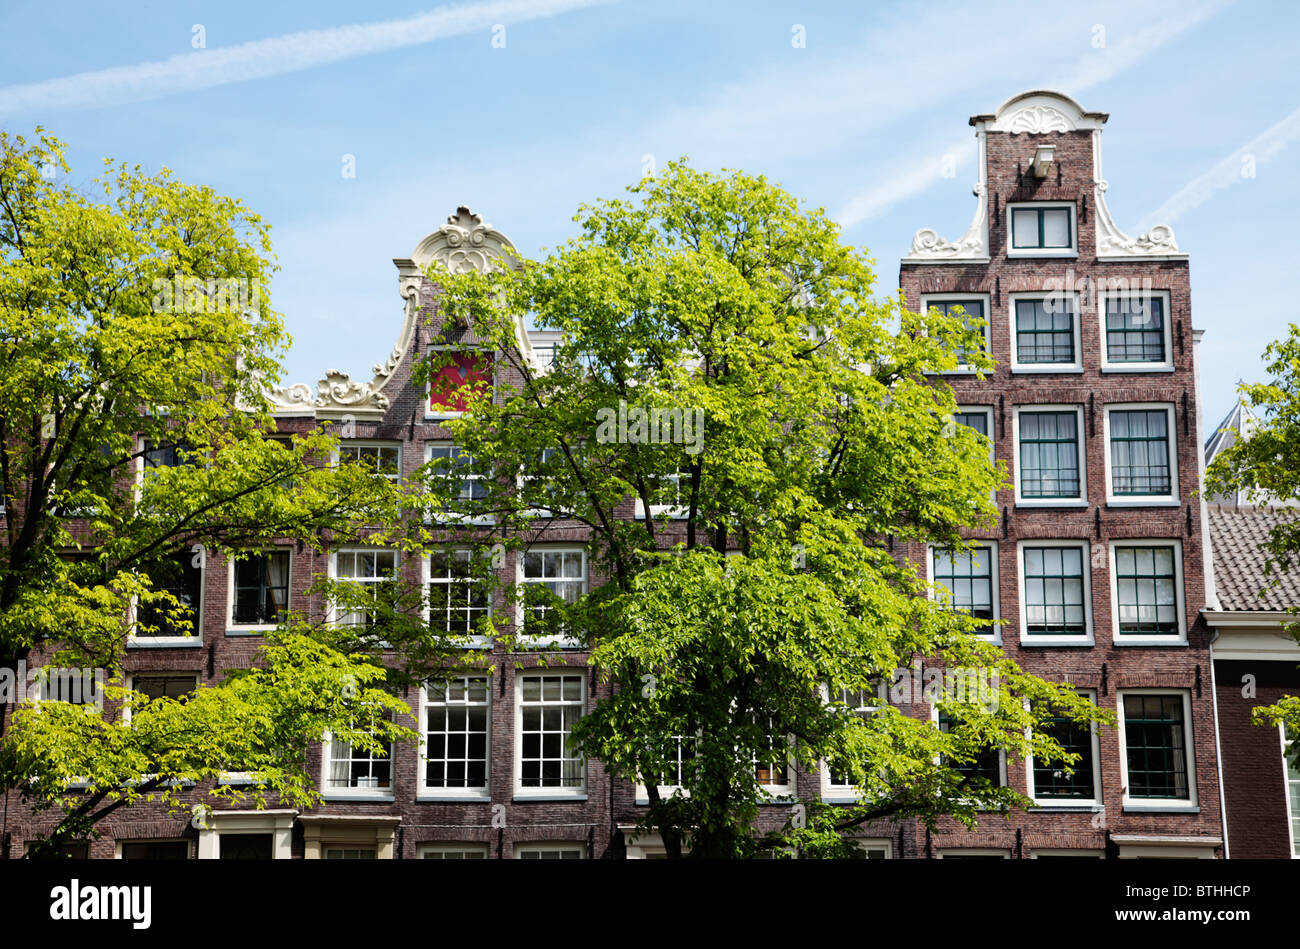 Homes along Prinsengracht Amsterdam - Stock Image